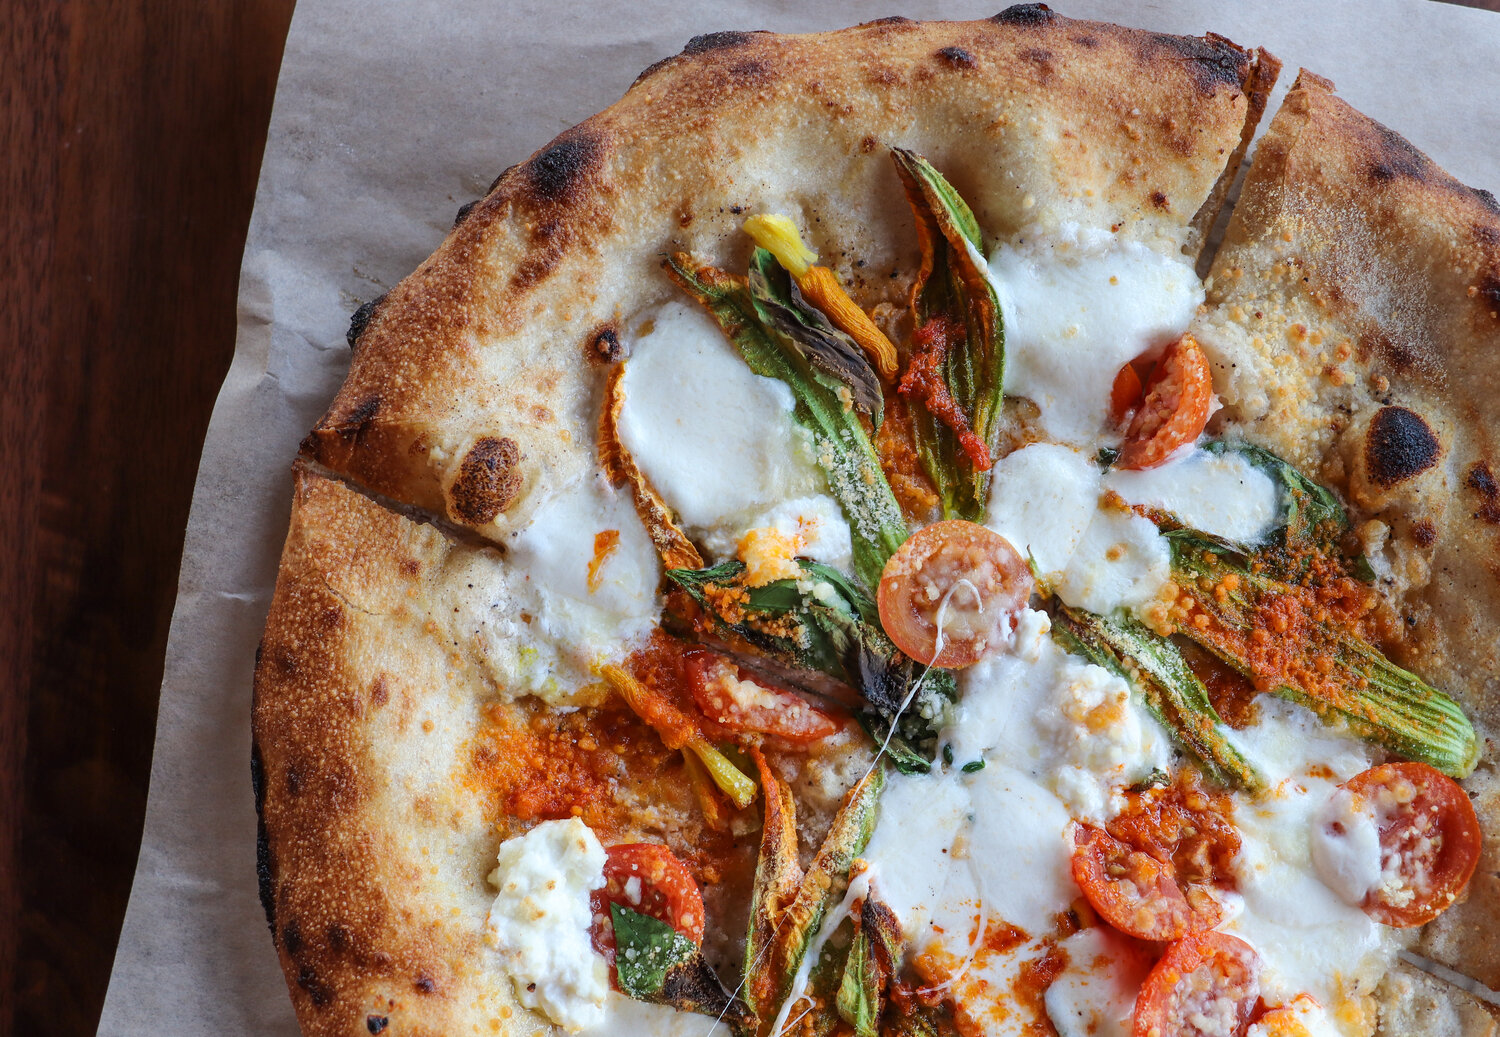 Fresh out the oven! Neapolitan inspired pizza with squash blossoms, heirloom tomatoes, Calabrian chilis, and smoked ricotta.